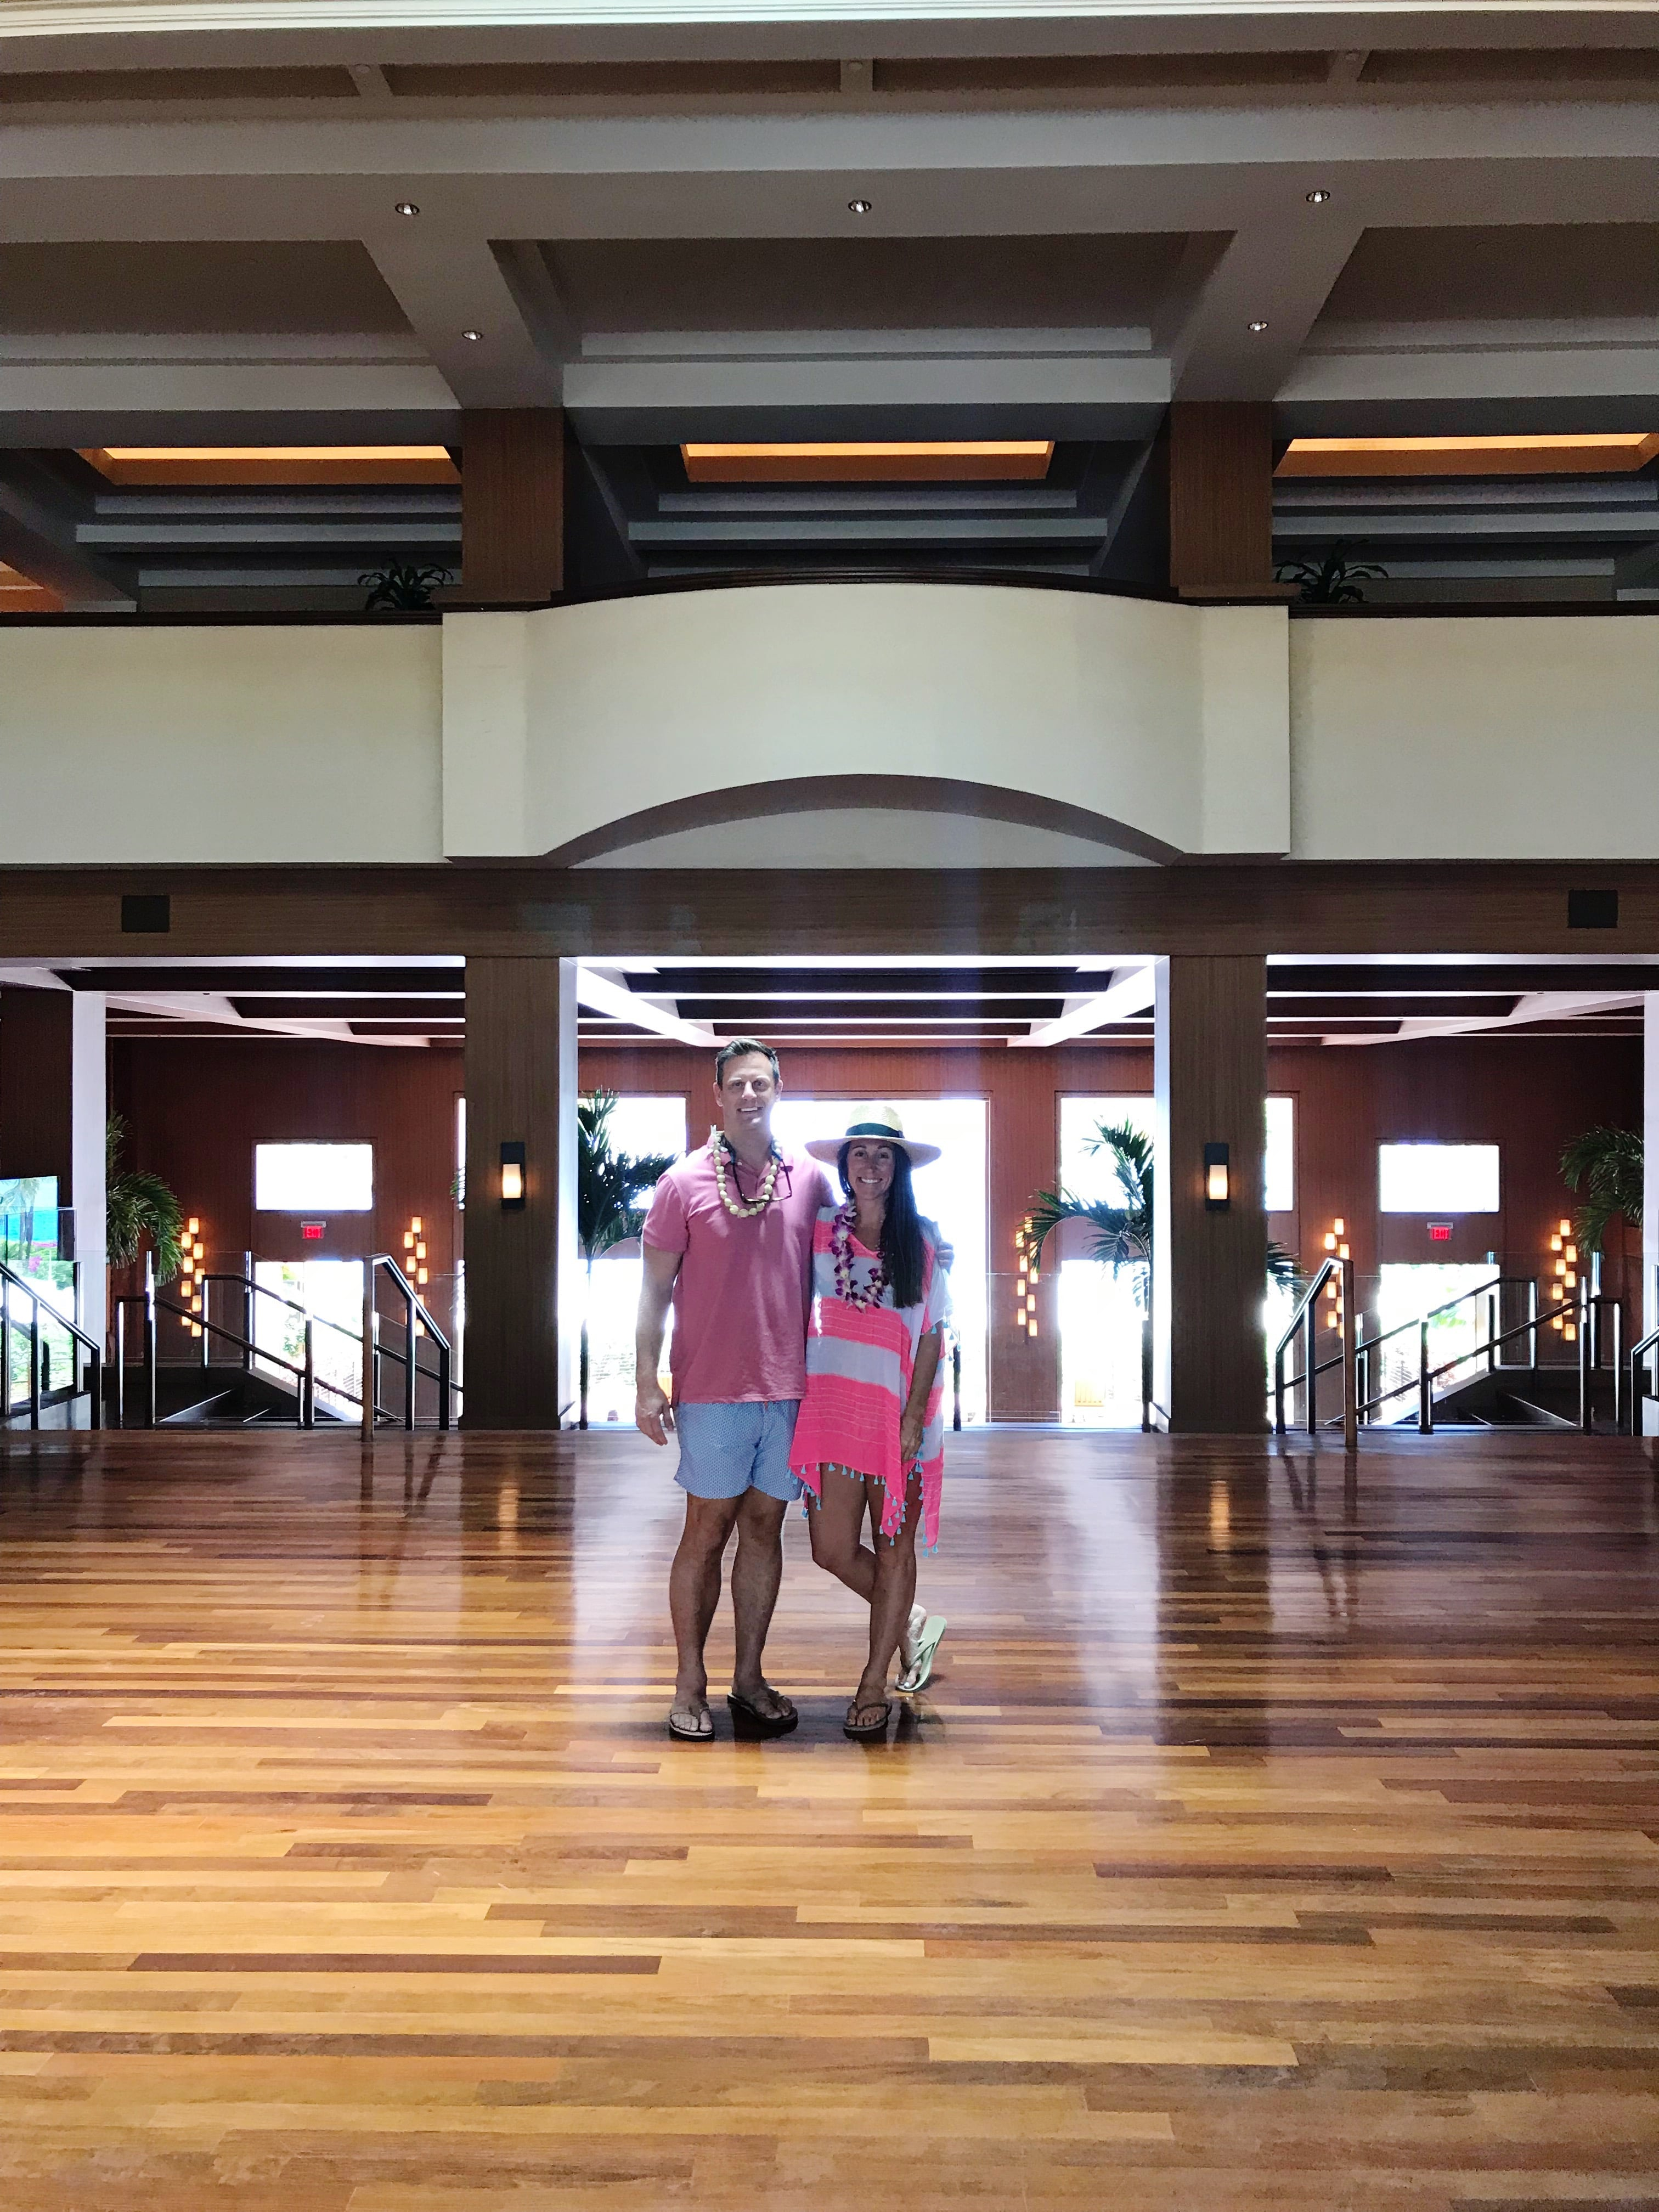 Our Stay At Four Seasons Lanai - Everything you need to know about staying at Four Seasons Lanai and visiting the Hawaiian island of Lanai! | Four Seasons Resort Lanai - Four Seasons Lanai - Four Seasons Hawaii - Lanai Hawaii Four Seasons - Four Seasons Hawaii Lanai - Lanai Hawaii - Where Is Lanai - #lanai #hawaii #travel